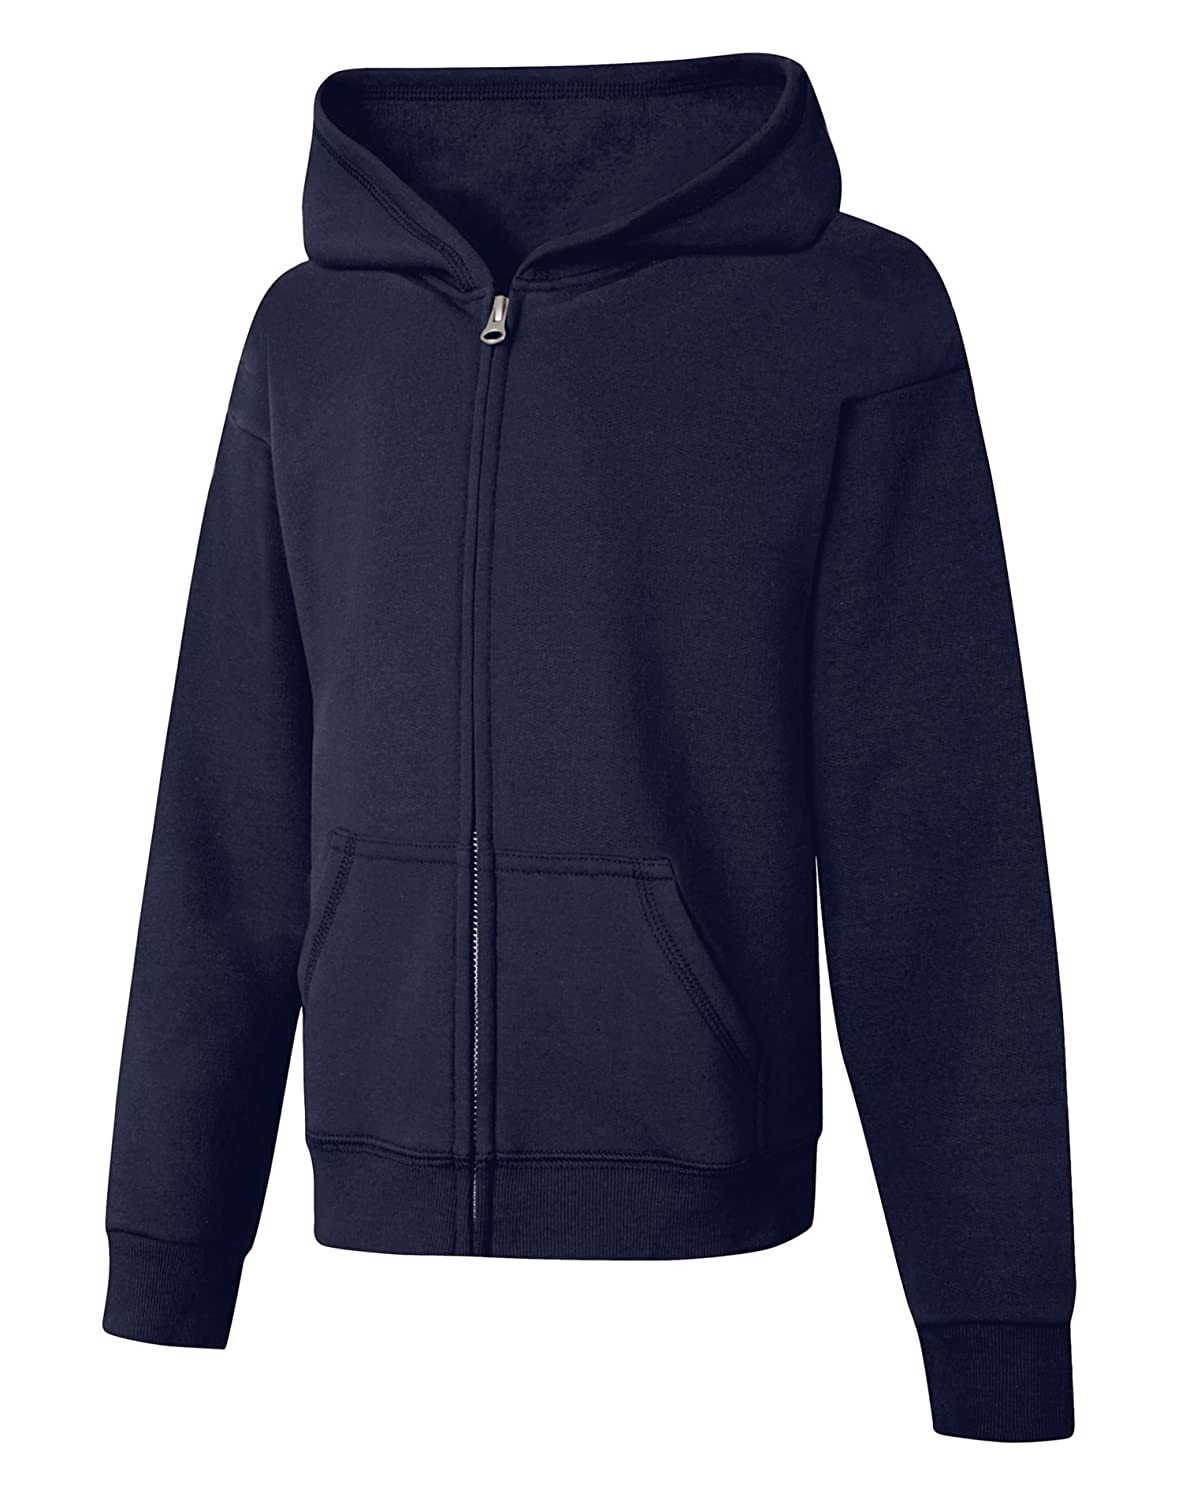 Hanes Big Girls Comfortsoft Ecosmart Full-Zip Fleece Hoodie/_Navy